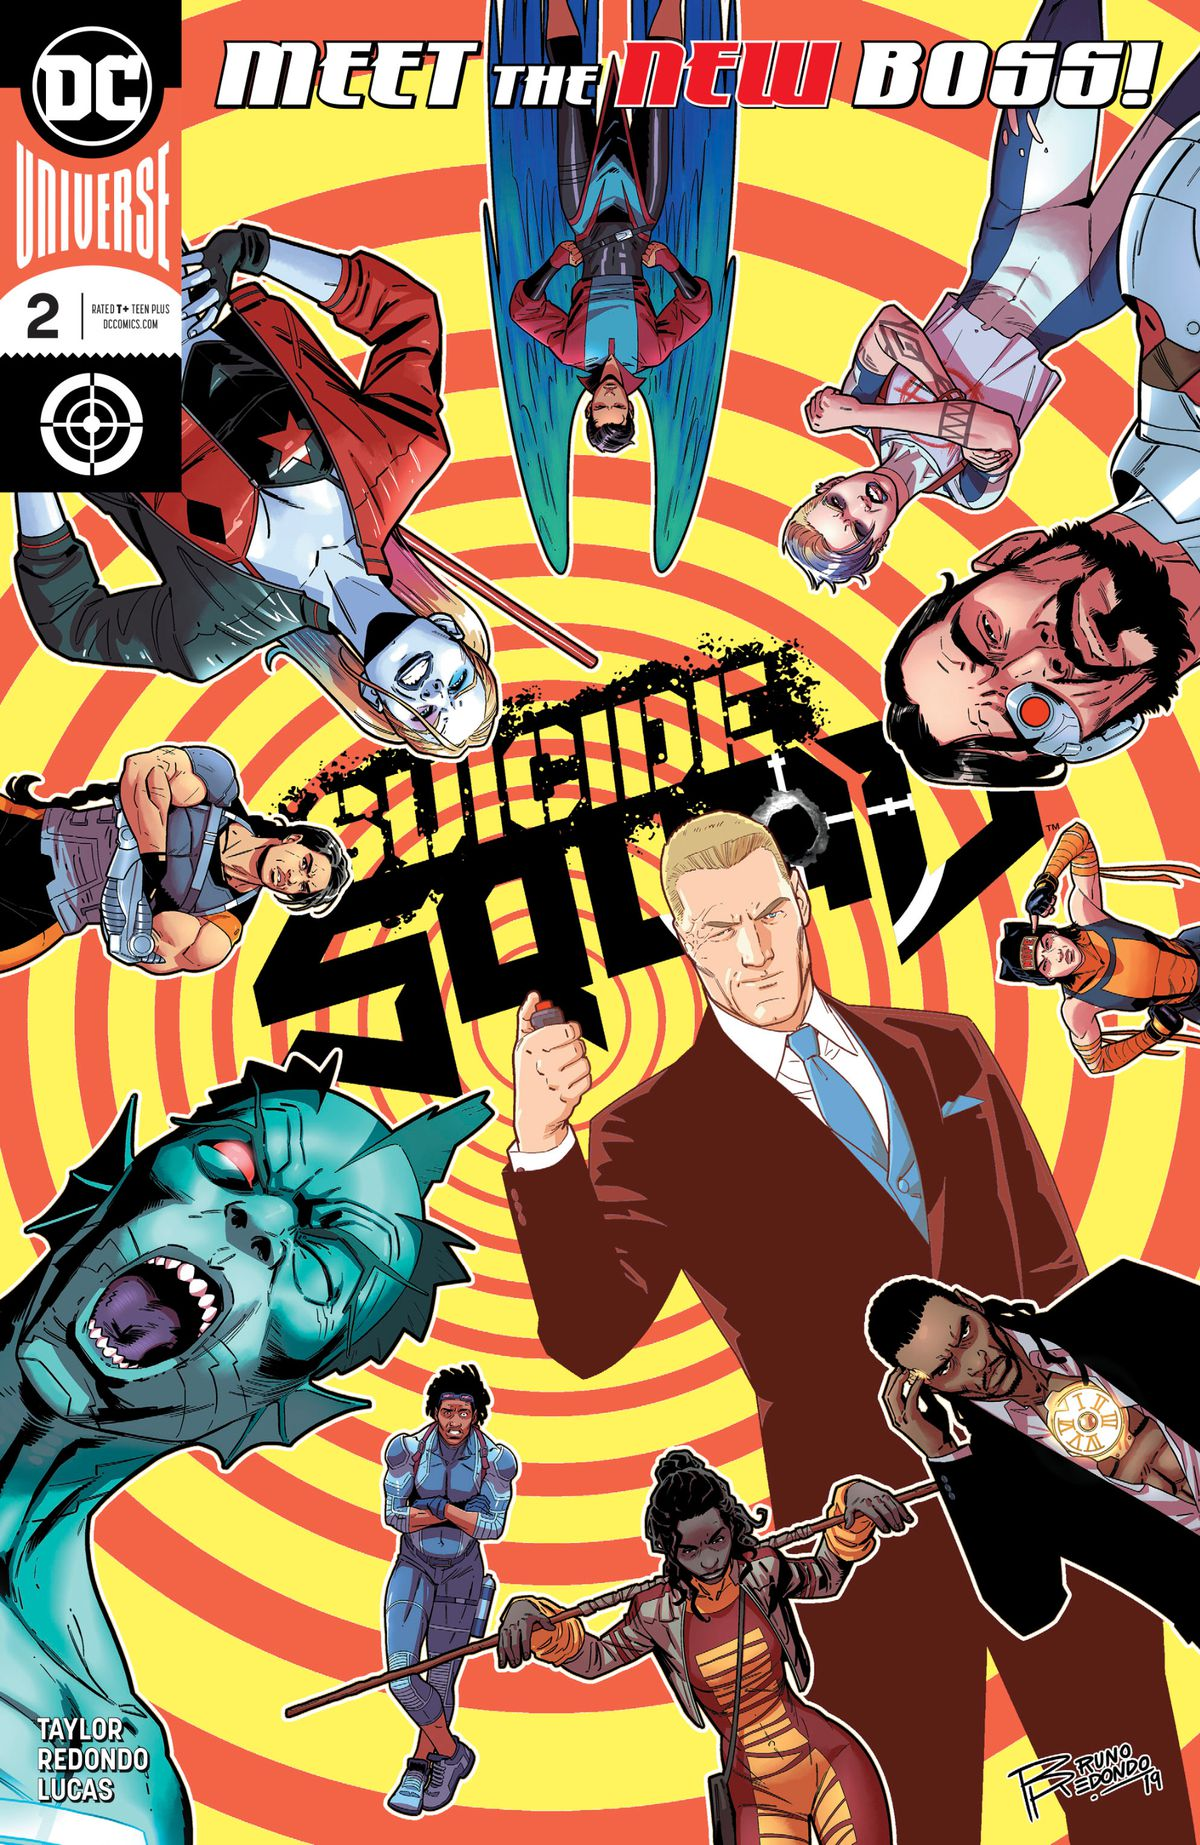 Nearly a dozen members of the Suicide Squad and the Revolutionaries arrayed around a yellow and orange spiral on the cover of Suicide Squad #2, DC Comics (2020).